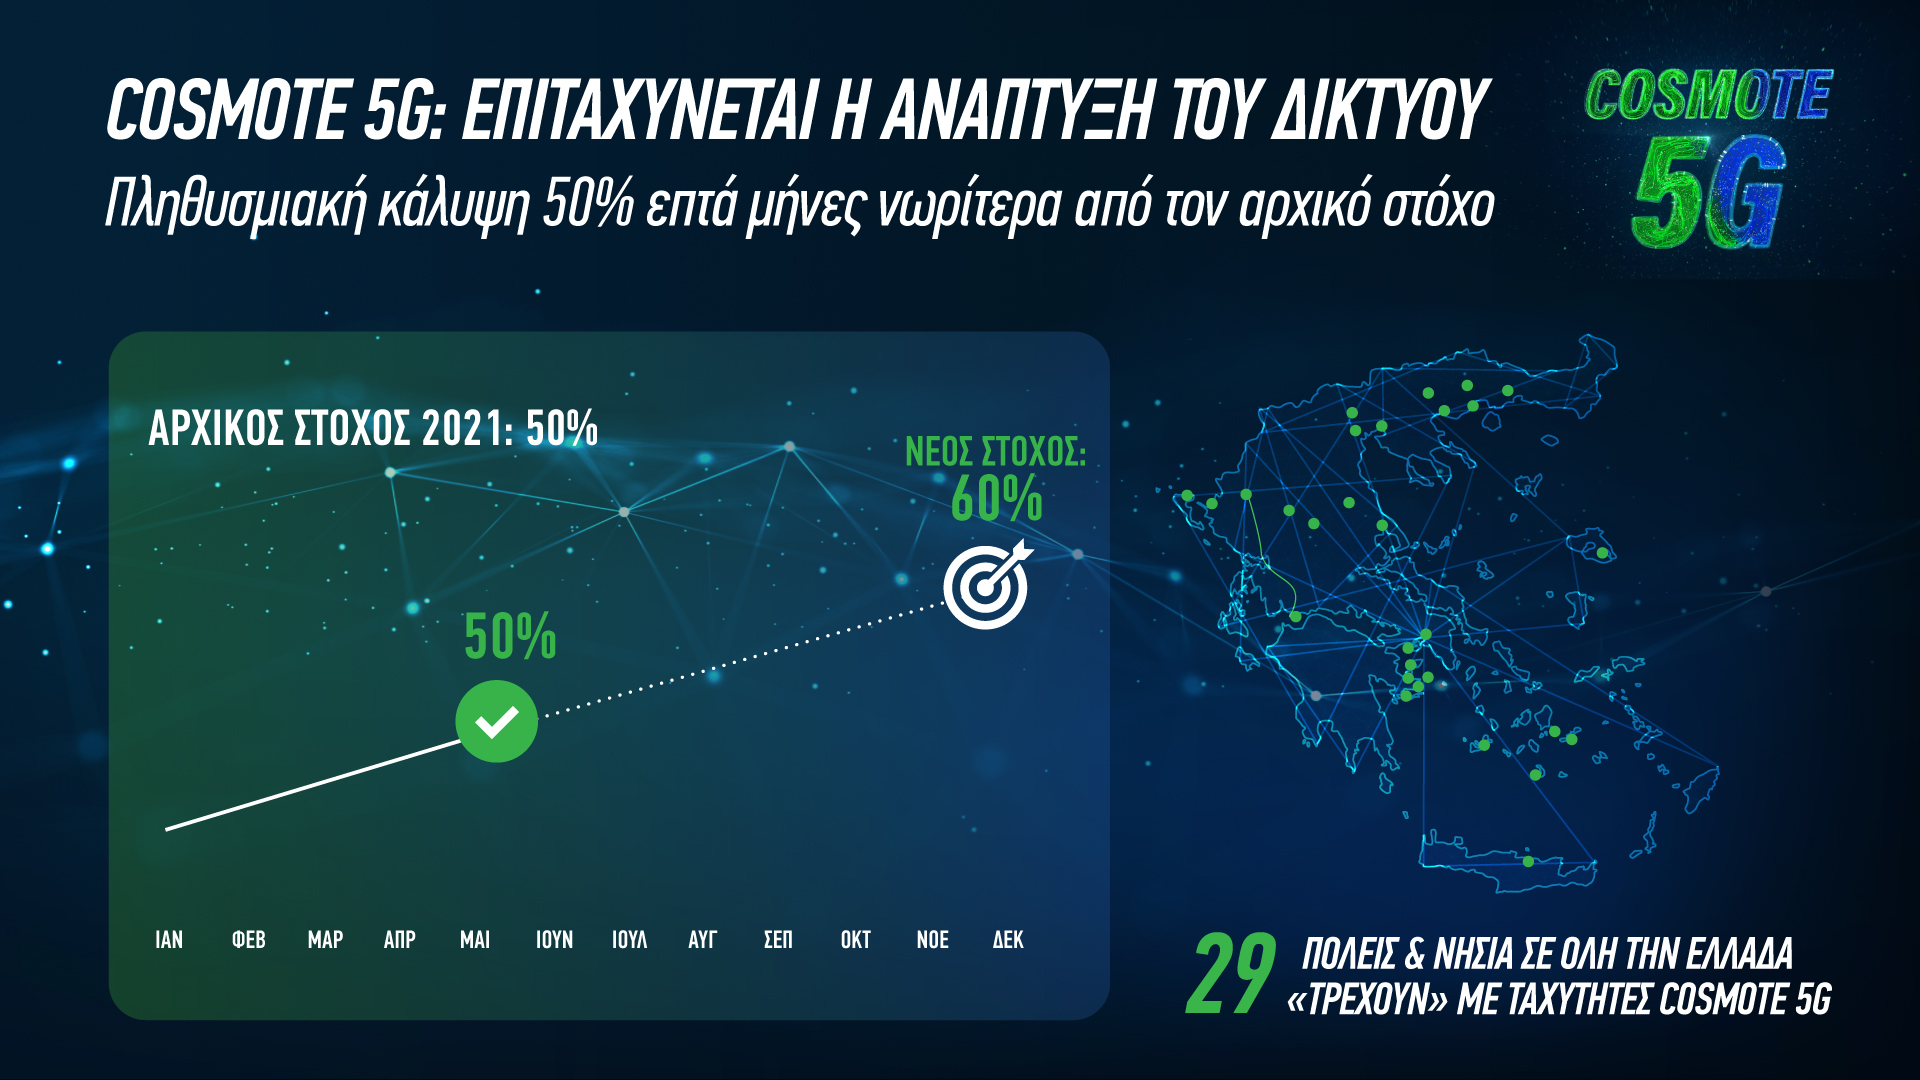 COSMOTE 5G Coverage Infographic